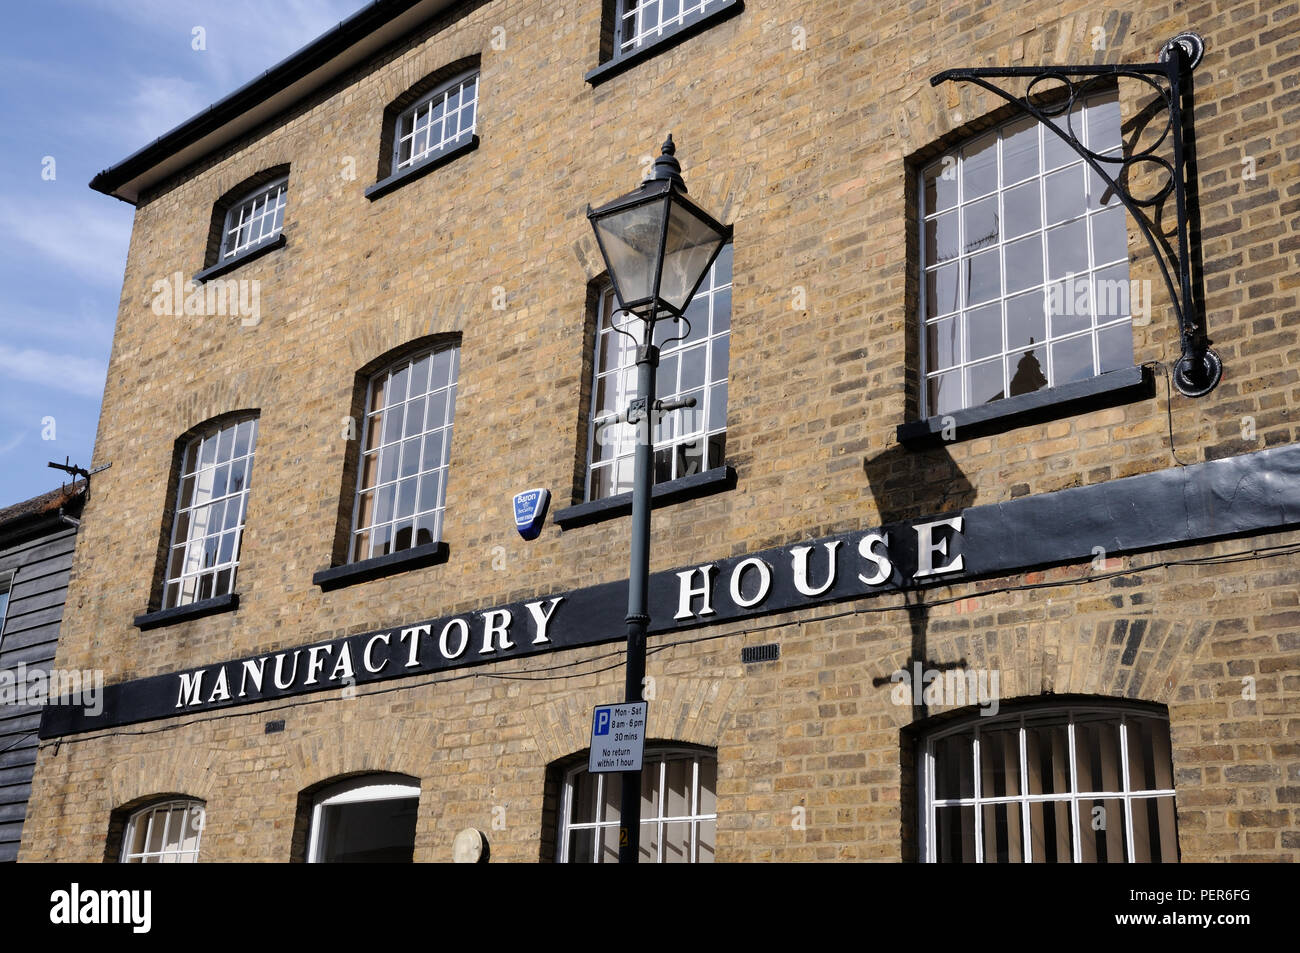 Manufactory House, Bell Lane,Hertford, Hertfordshire, dates to early 19th century - Stock Image